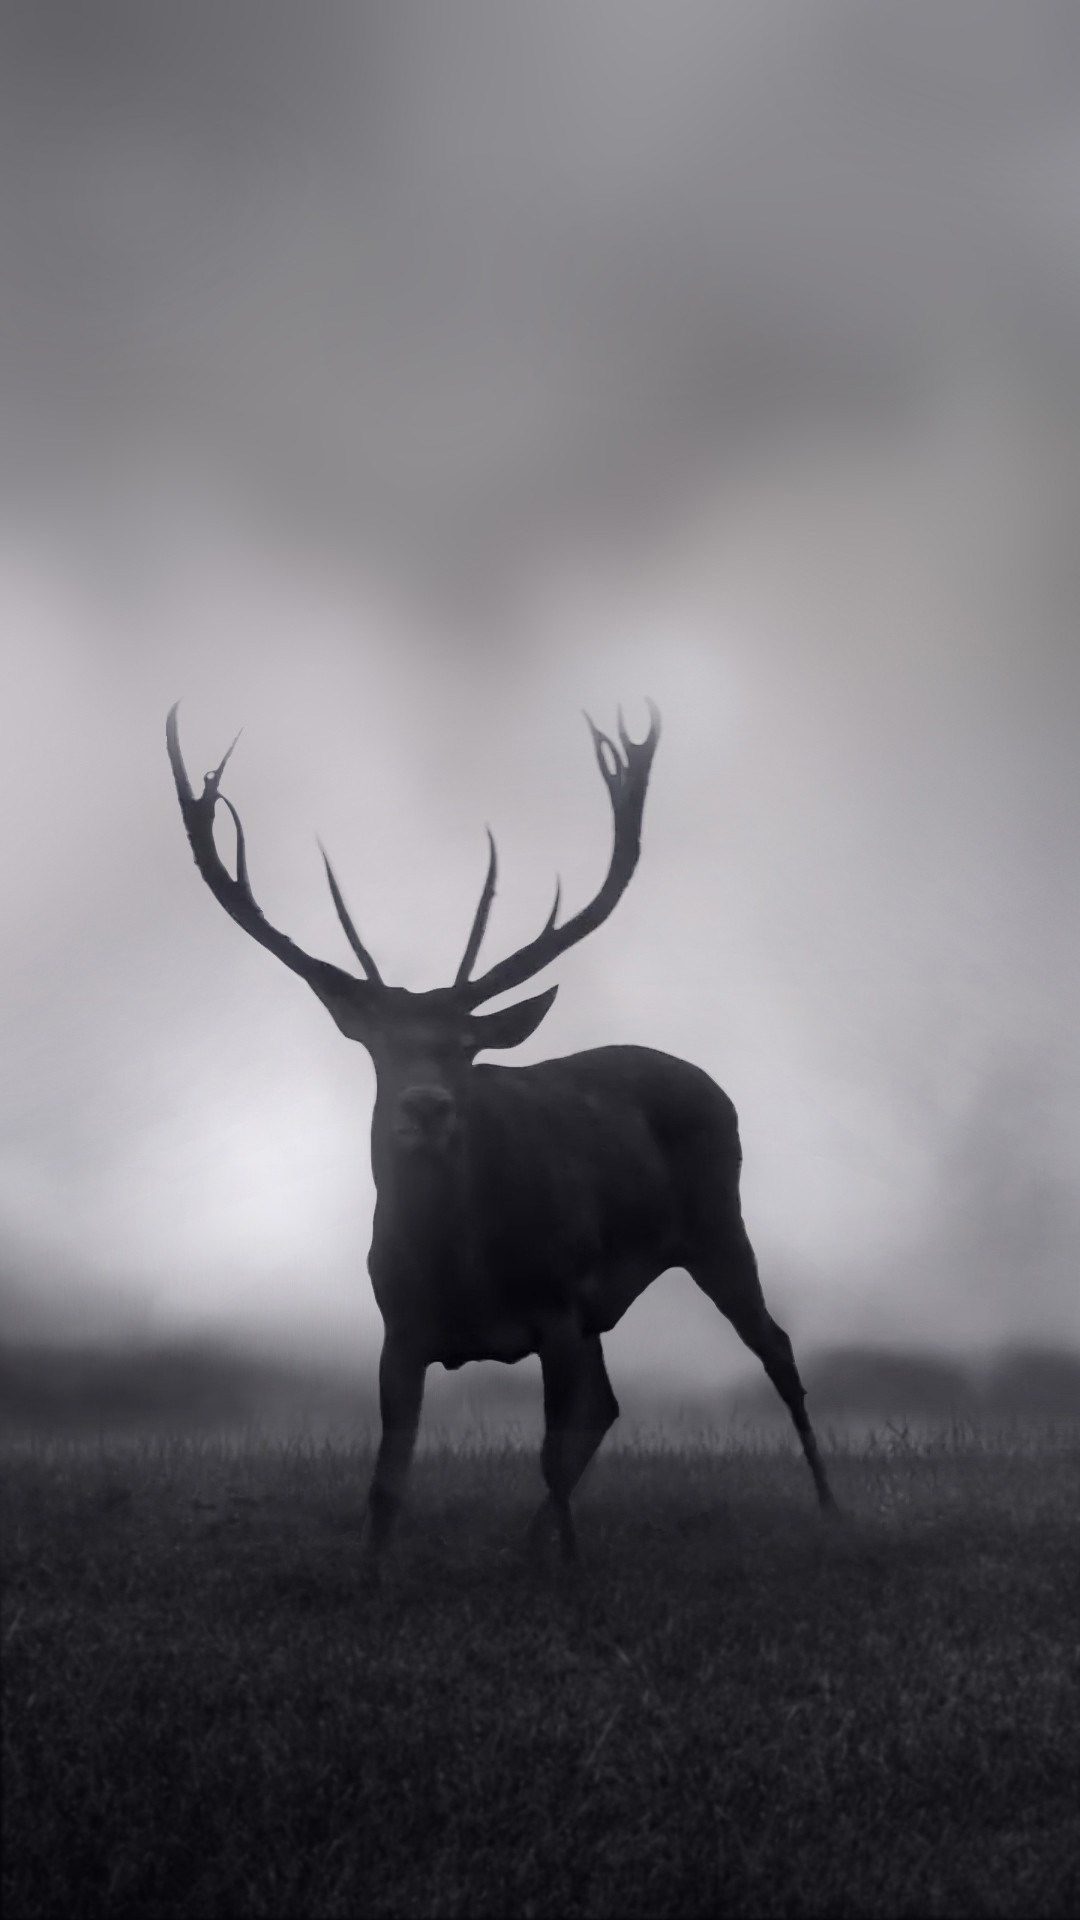 free download deer wallpapers iphone 7 and 7 plus jetblack